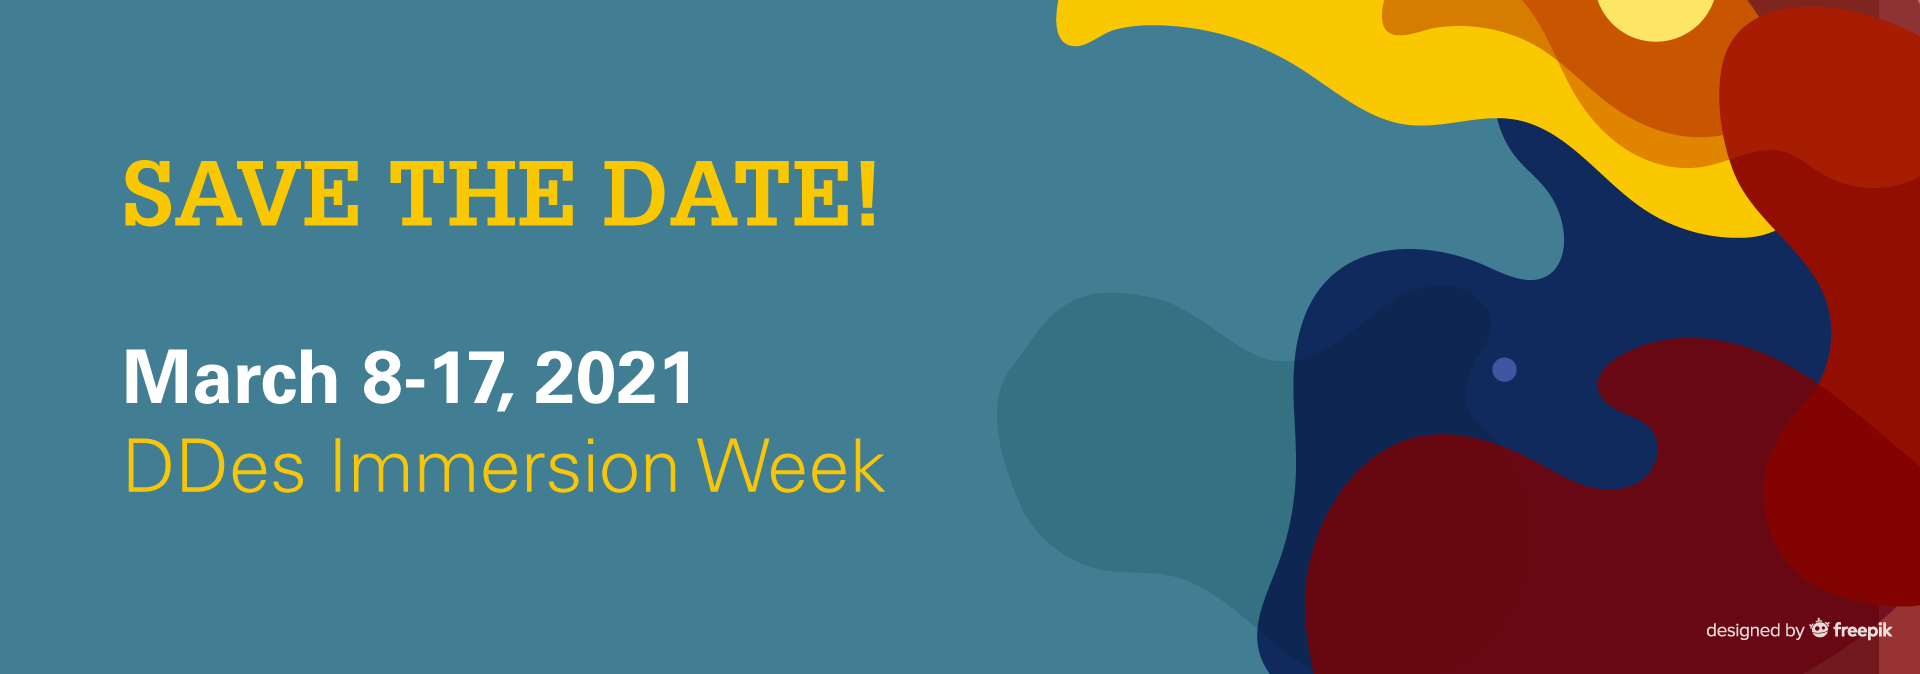 Please save the date for the next DDes Immersion Week, taking place March 8-17, 2021.